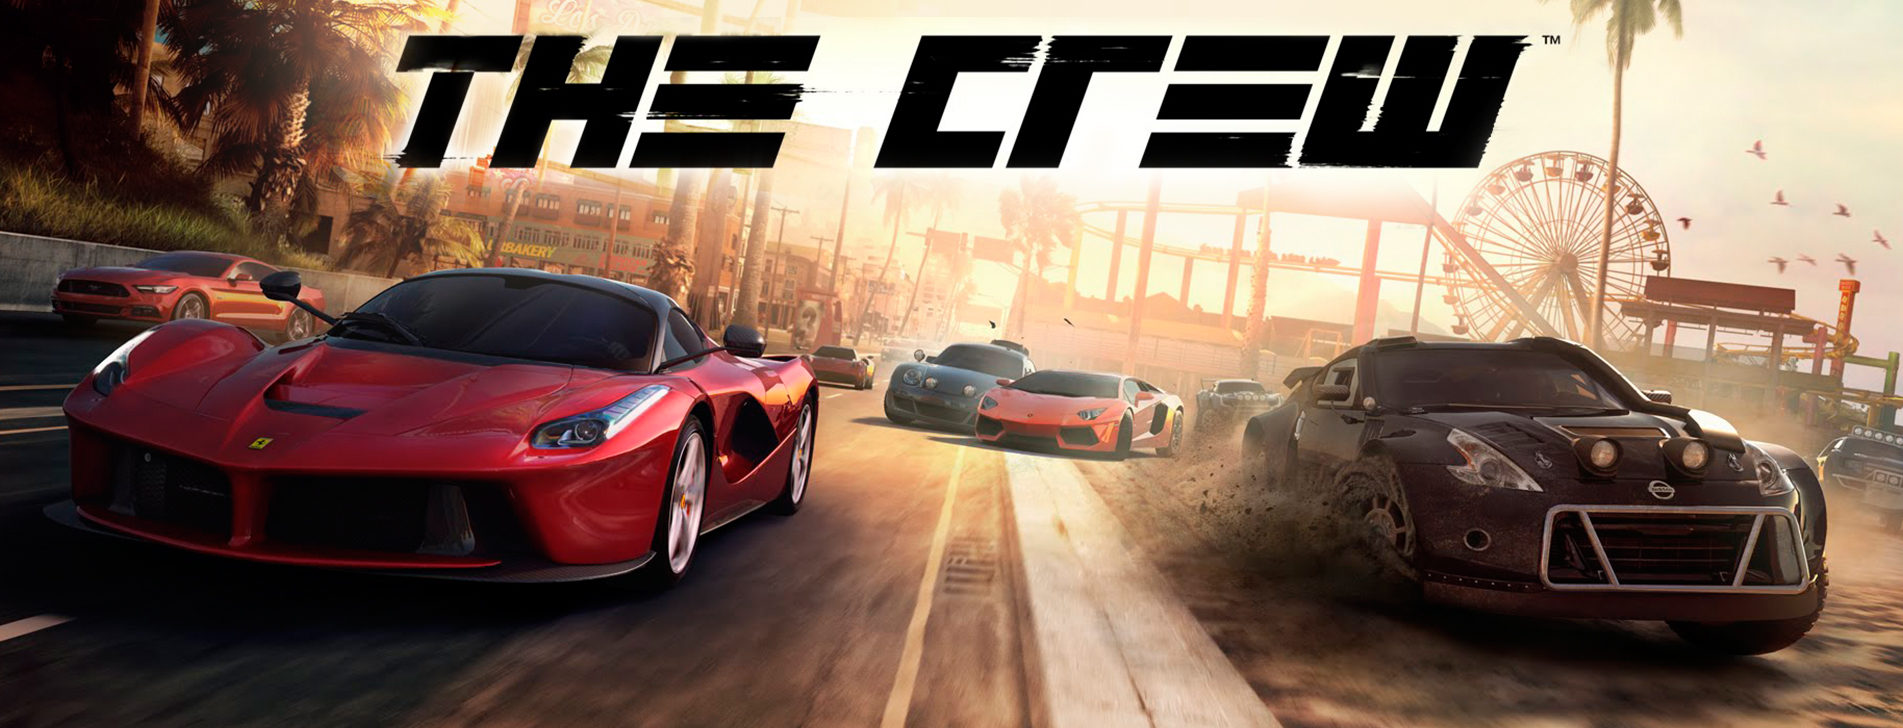 GAME LOCALIZATION: THE CREW